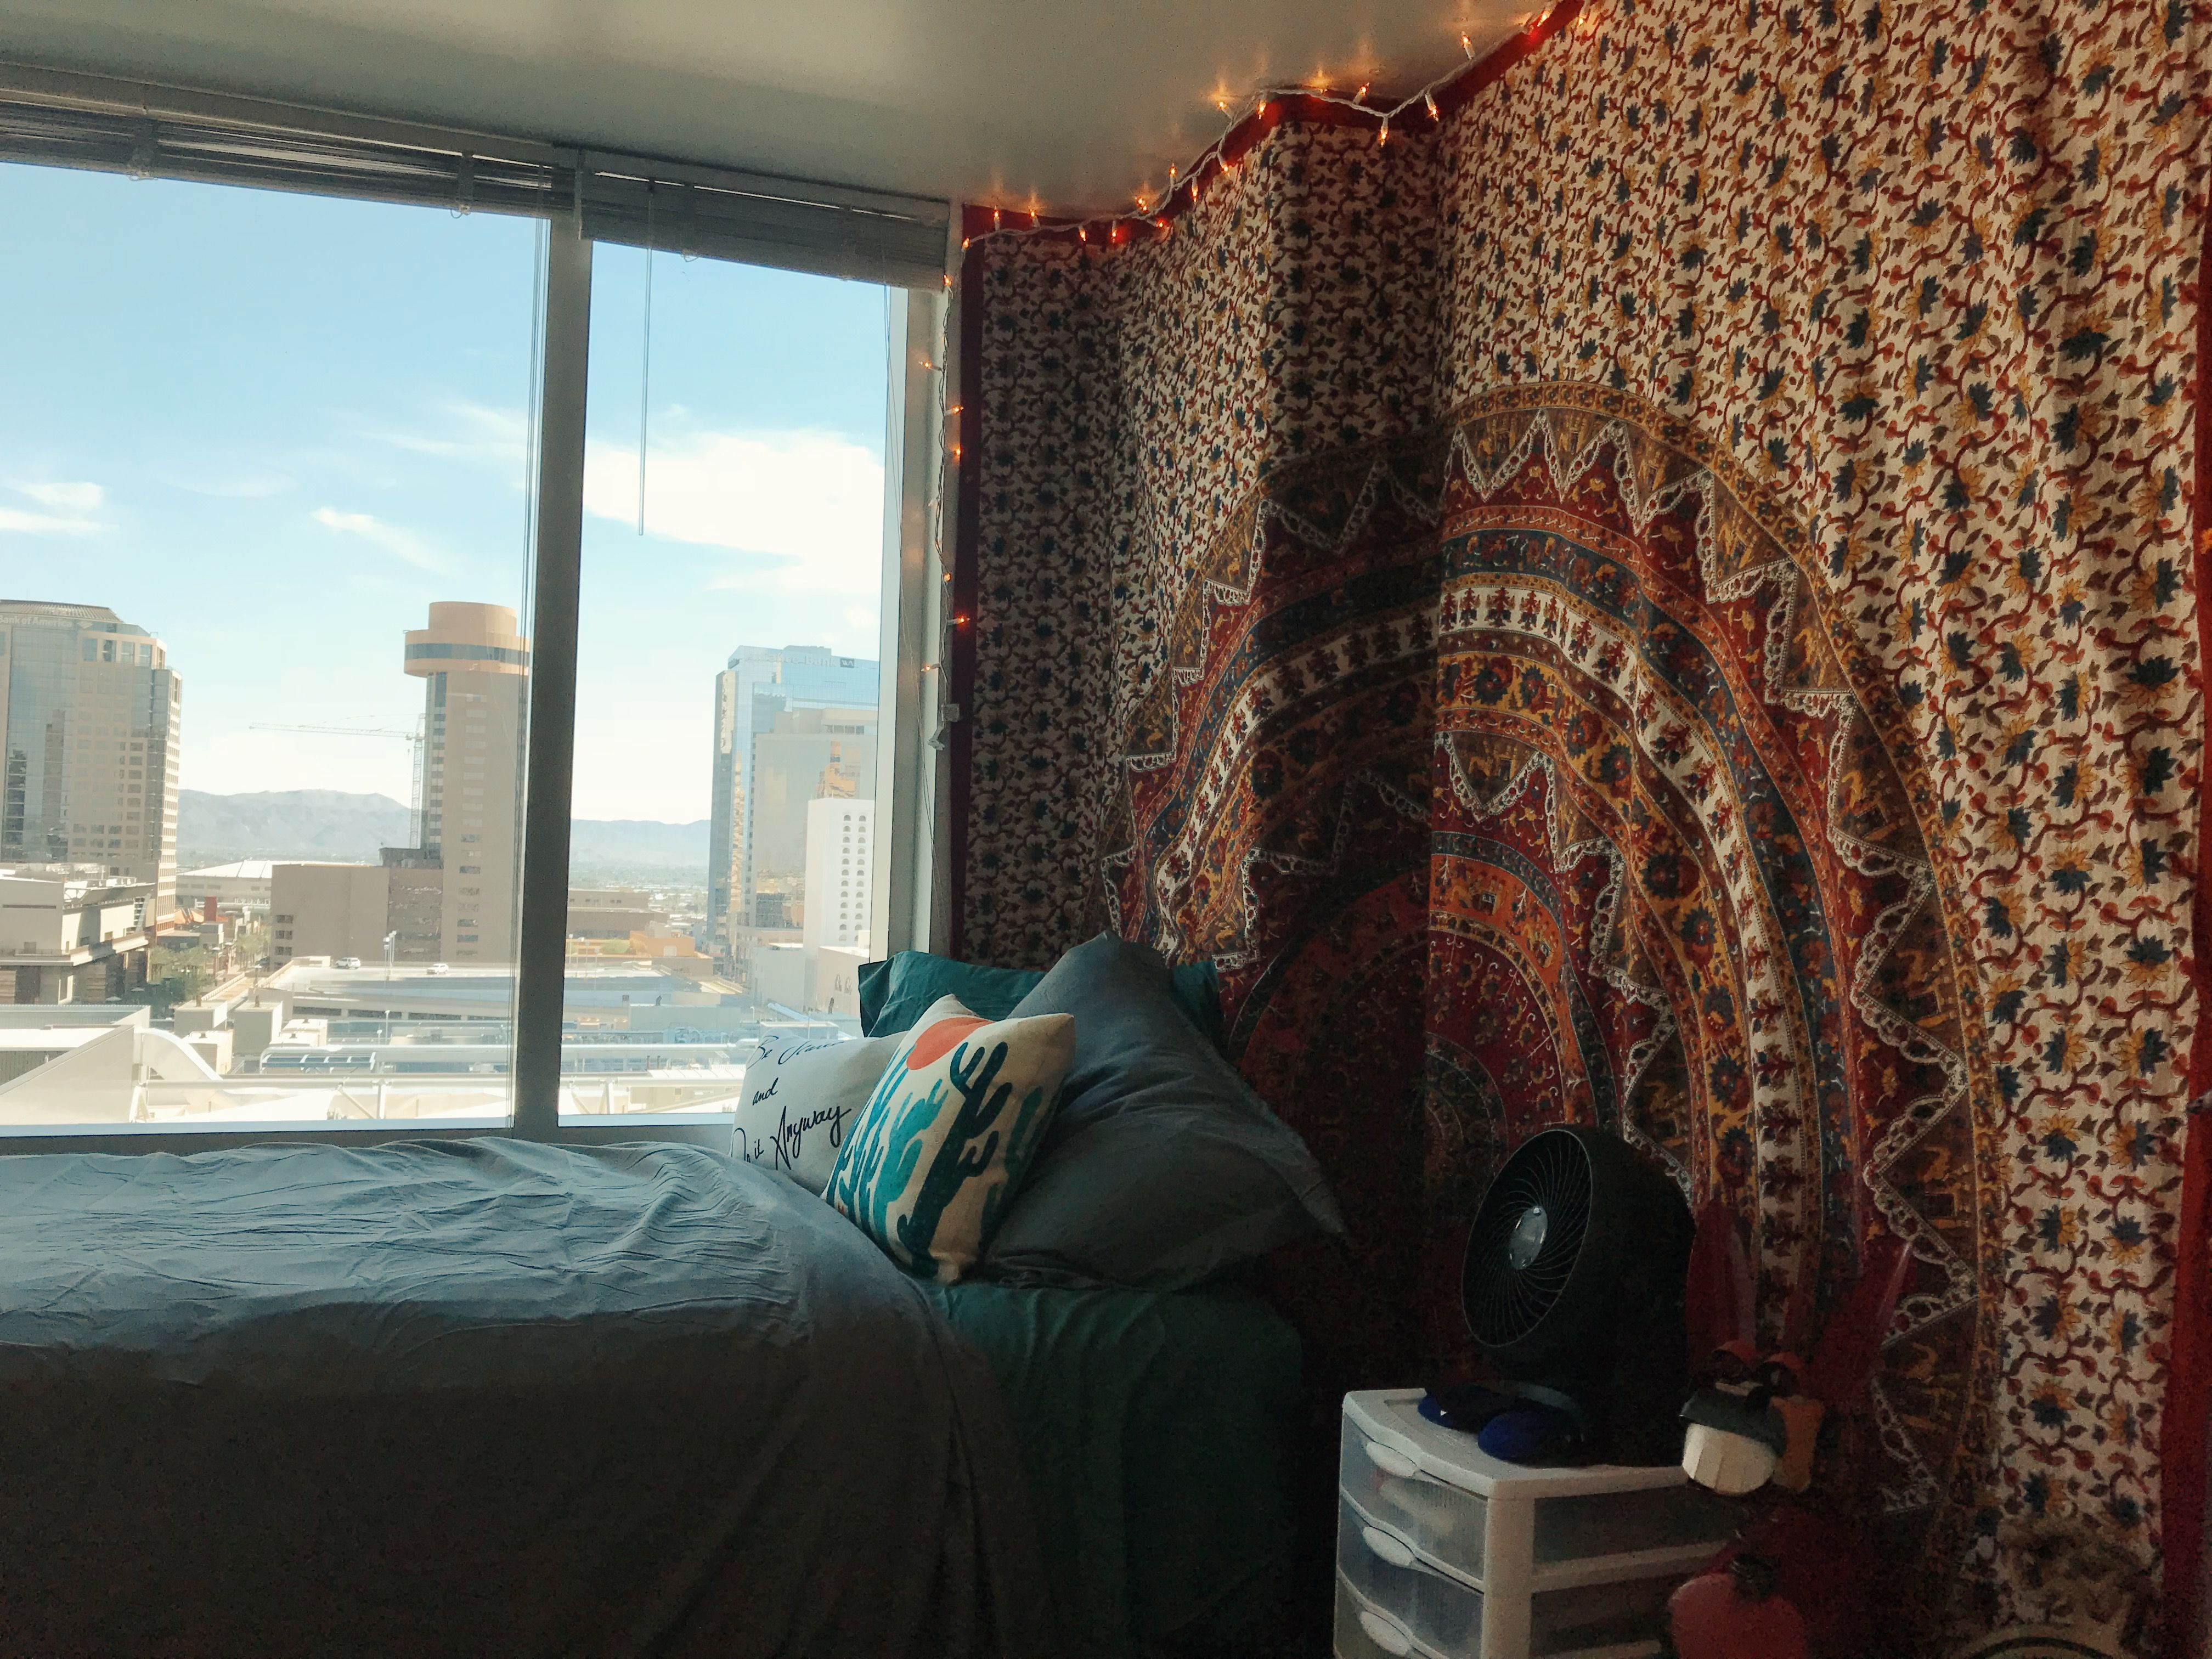 Arizona State University Asu Taylor Place Dorms Dorm Room Tapestry Boho Bohemian Indie Bedding Window View 14th Floor Dorm Room Tapestry Asu Dorm Window Bed